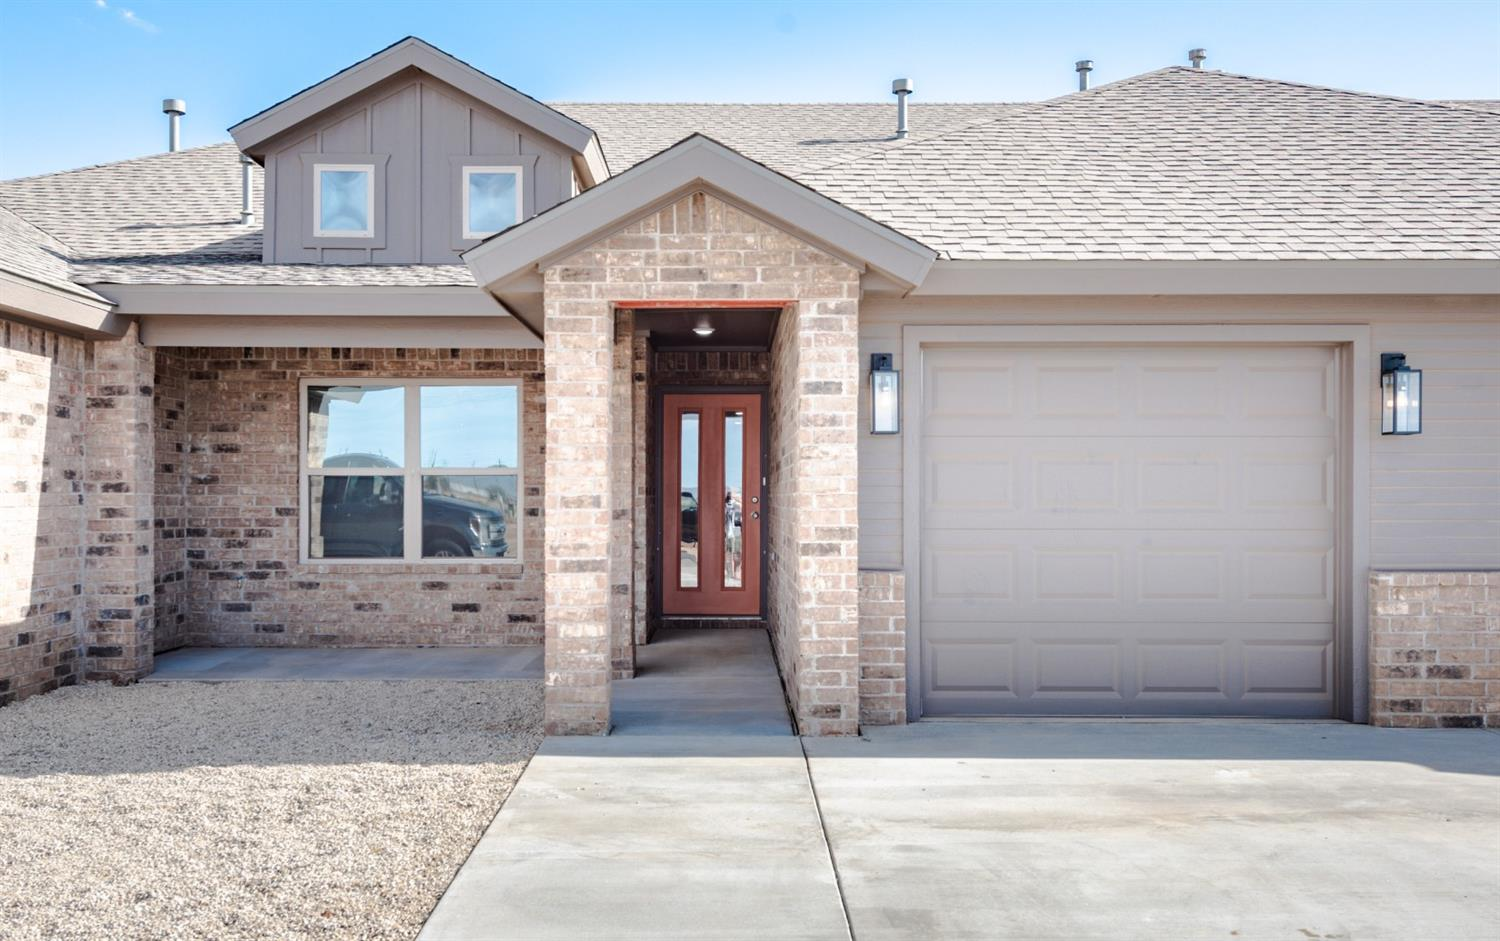 Take a look at this newly constructed 2 bedroom 2 bath townhome in North Lubbock's newest development, Lincoln 16. This property is well thought out with it's open living, kitchen,and dining area combined with it's high quality construction. Maintenance on this property has been designed to be minimal.